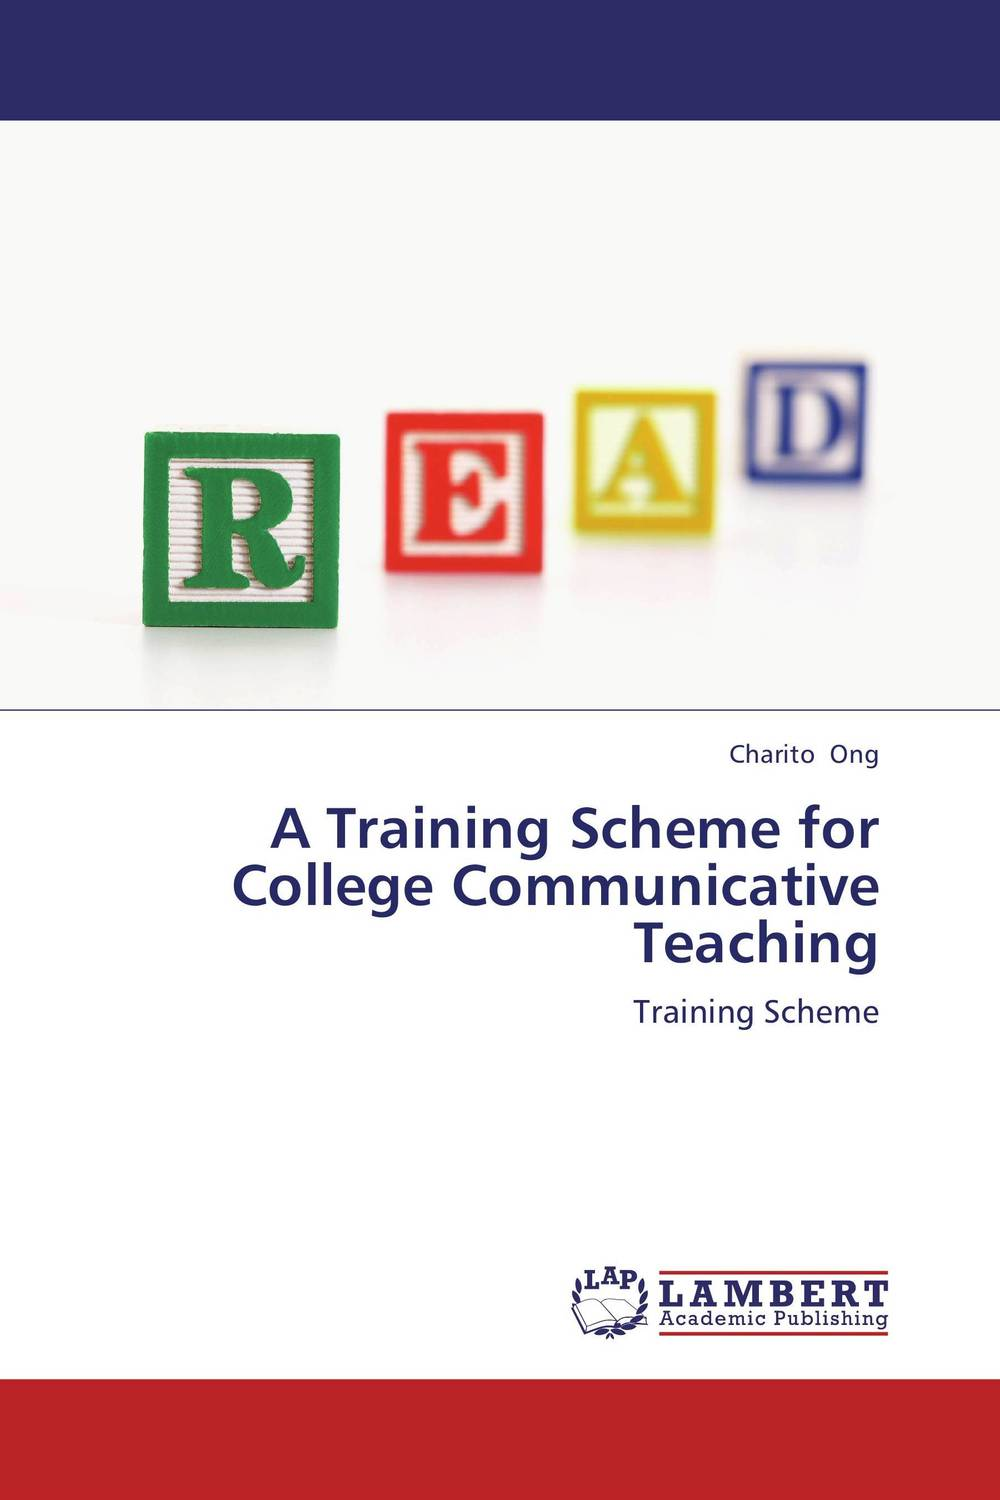 A Training Scheme for College Communicative Teaching elt and development of communicative abilities of university students